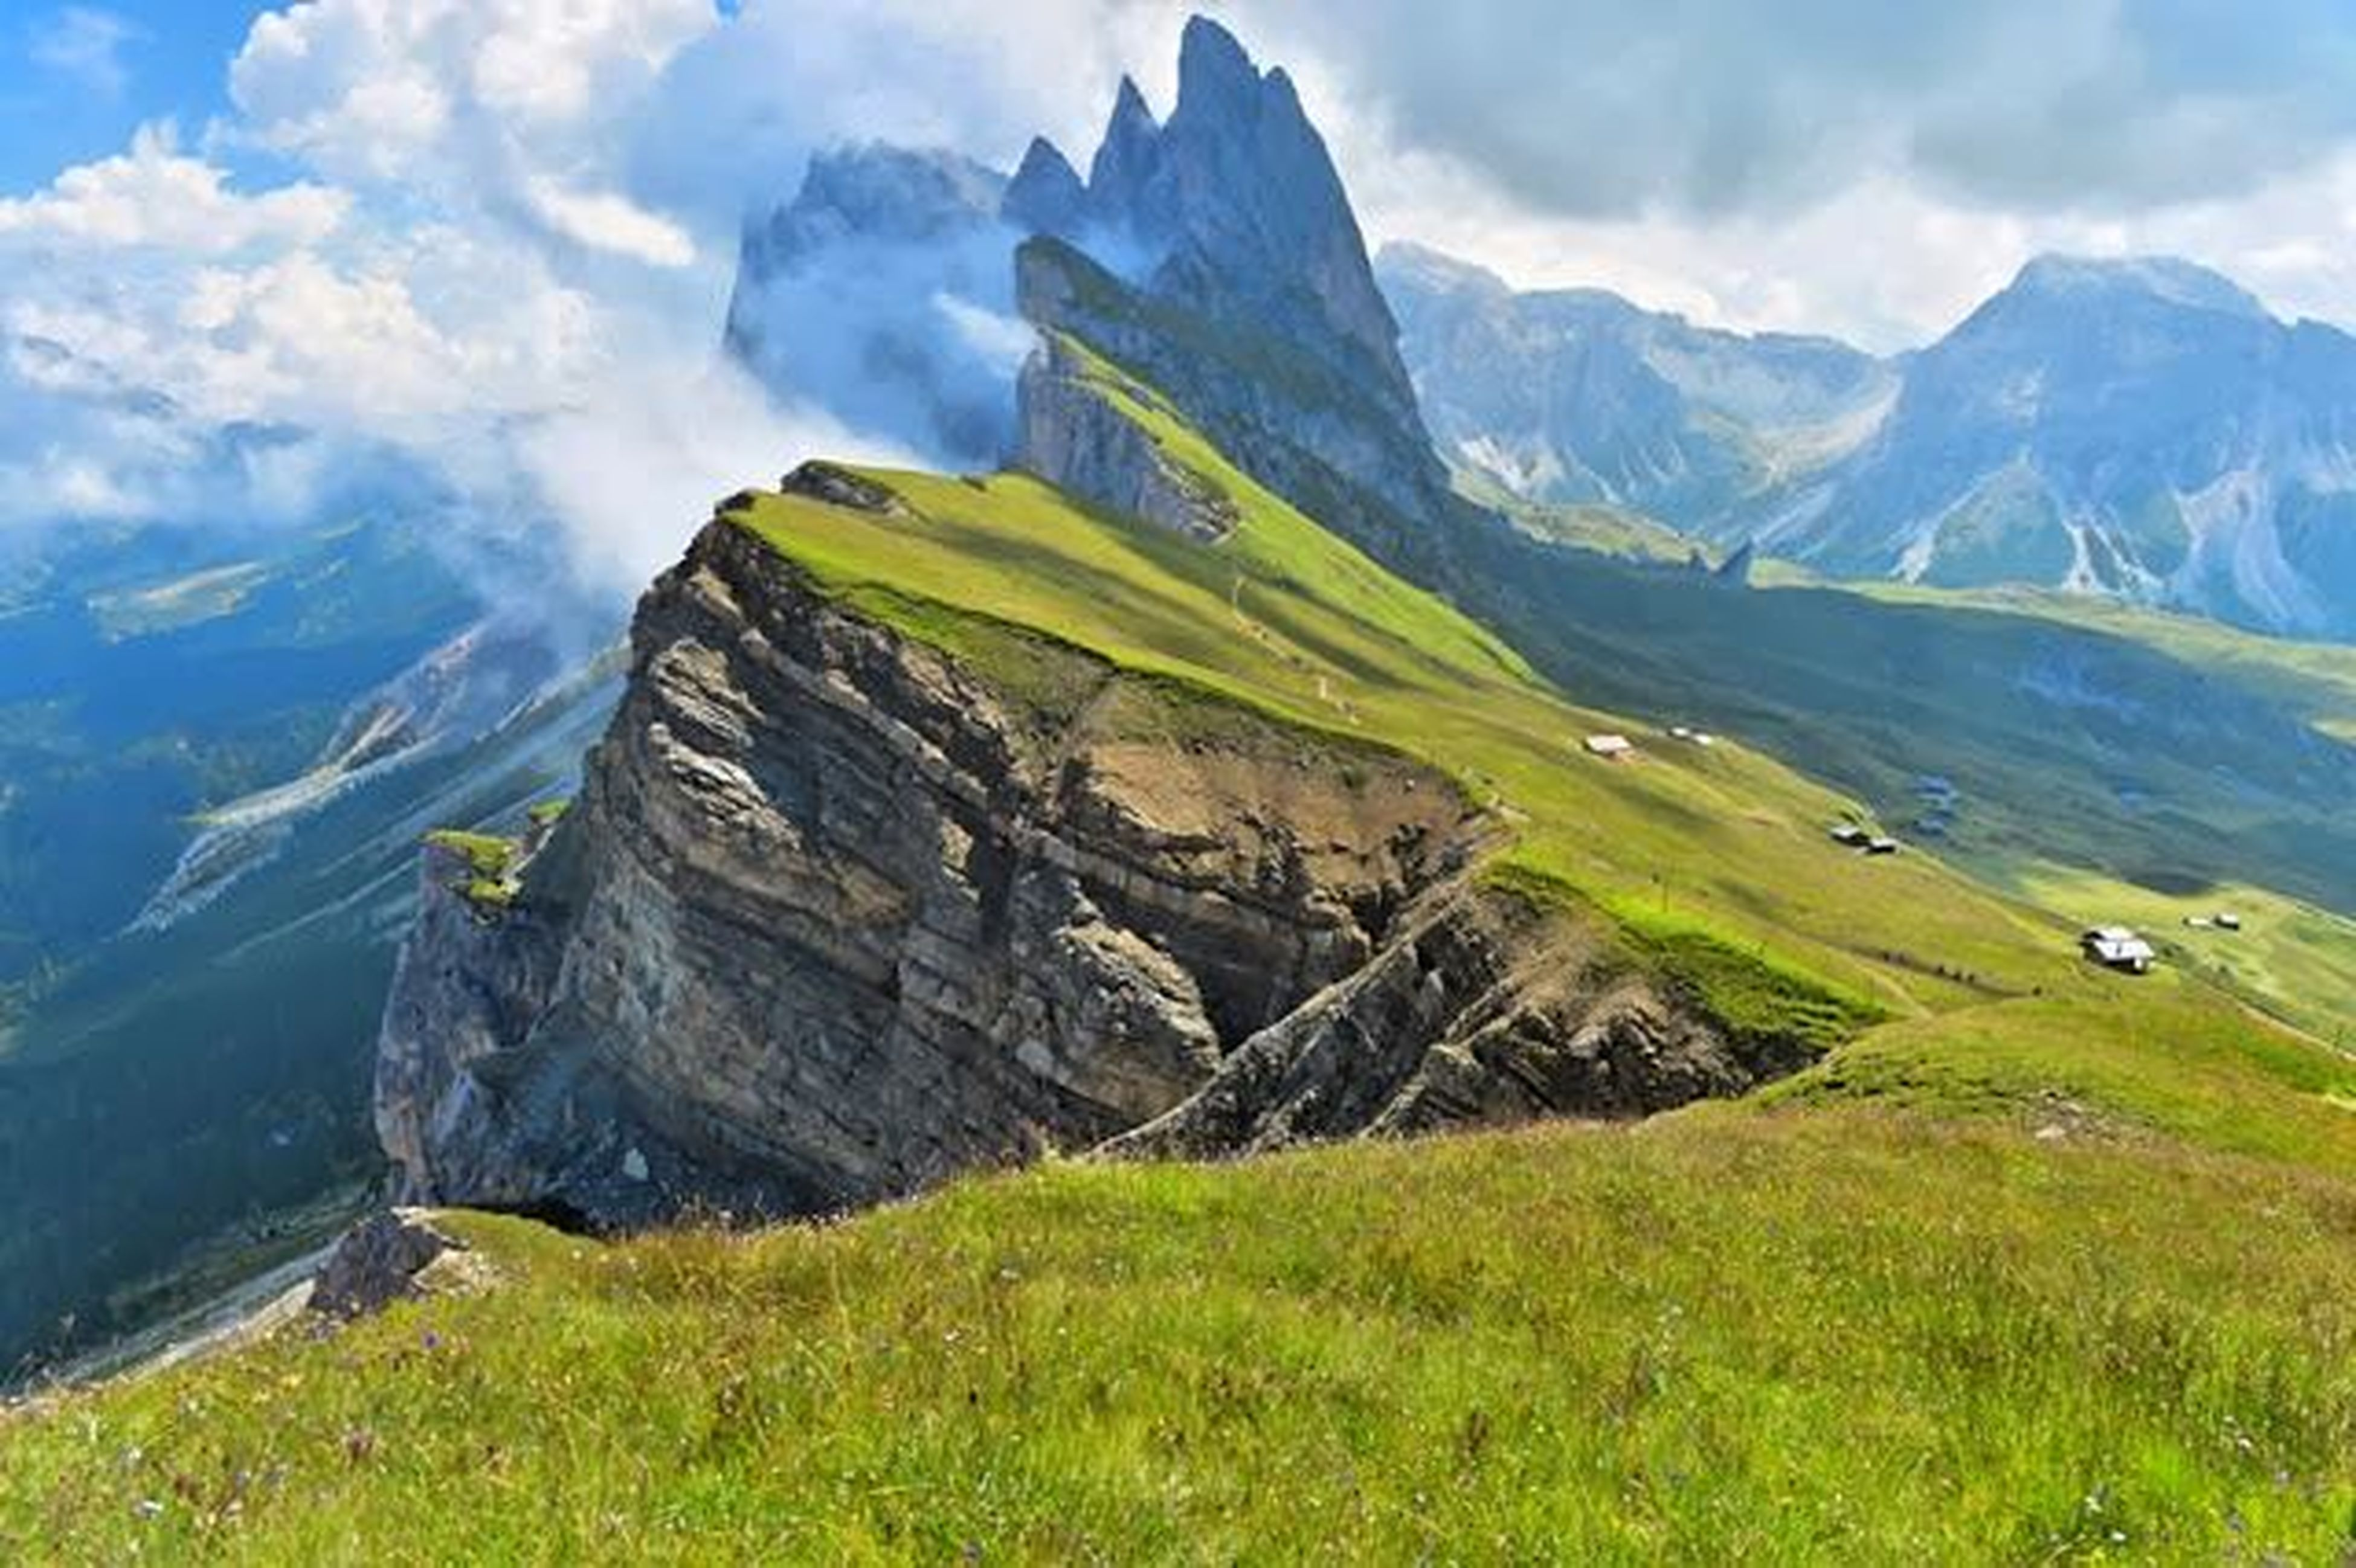 mountain, sky, grass, mountain range, tranquil scene, landscape, tranquility, scenics, cloud - sky, beauty in nature, nature, cloud, non-urban scene, cloudy, water, idyllic, day, remote, rock - object, physical geography